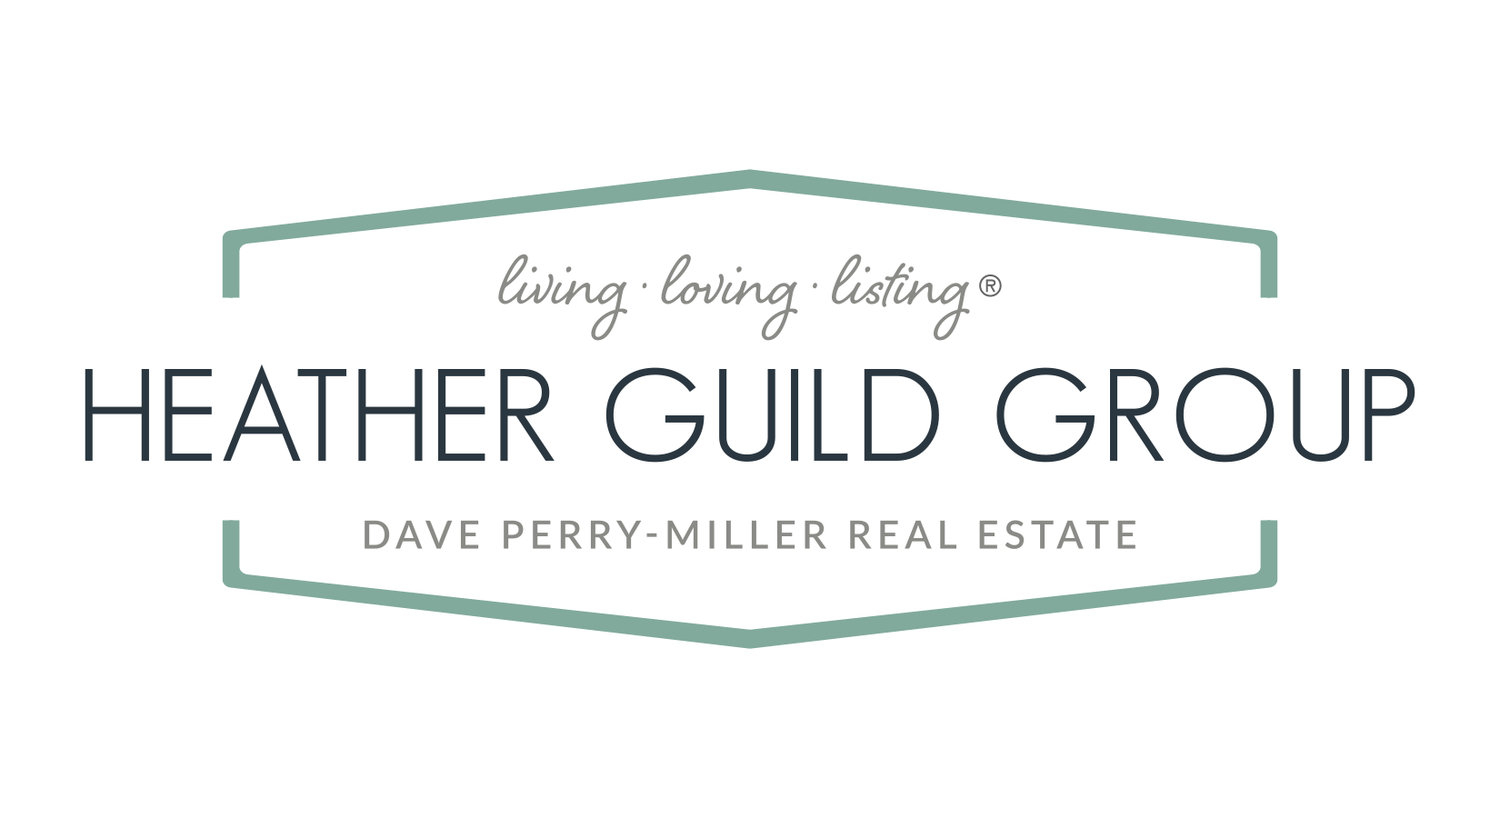 Heather Guild Group